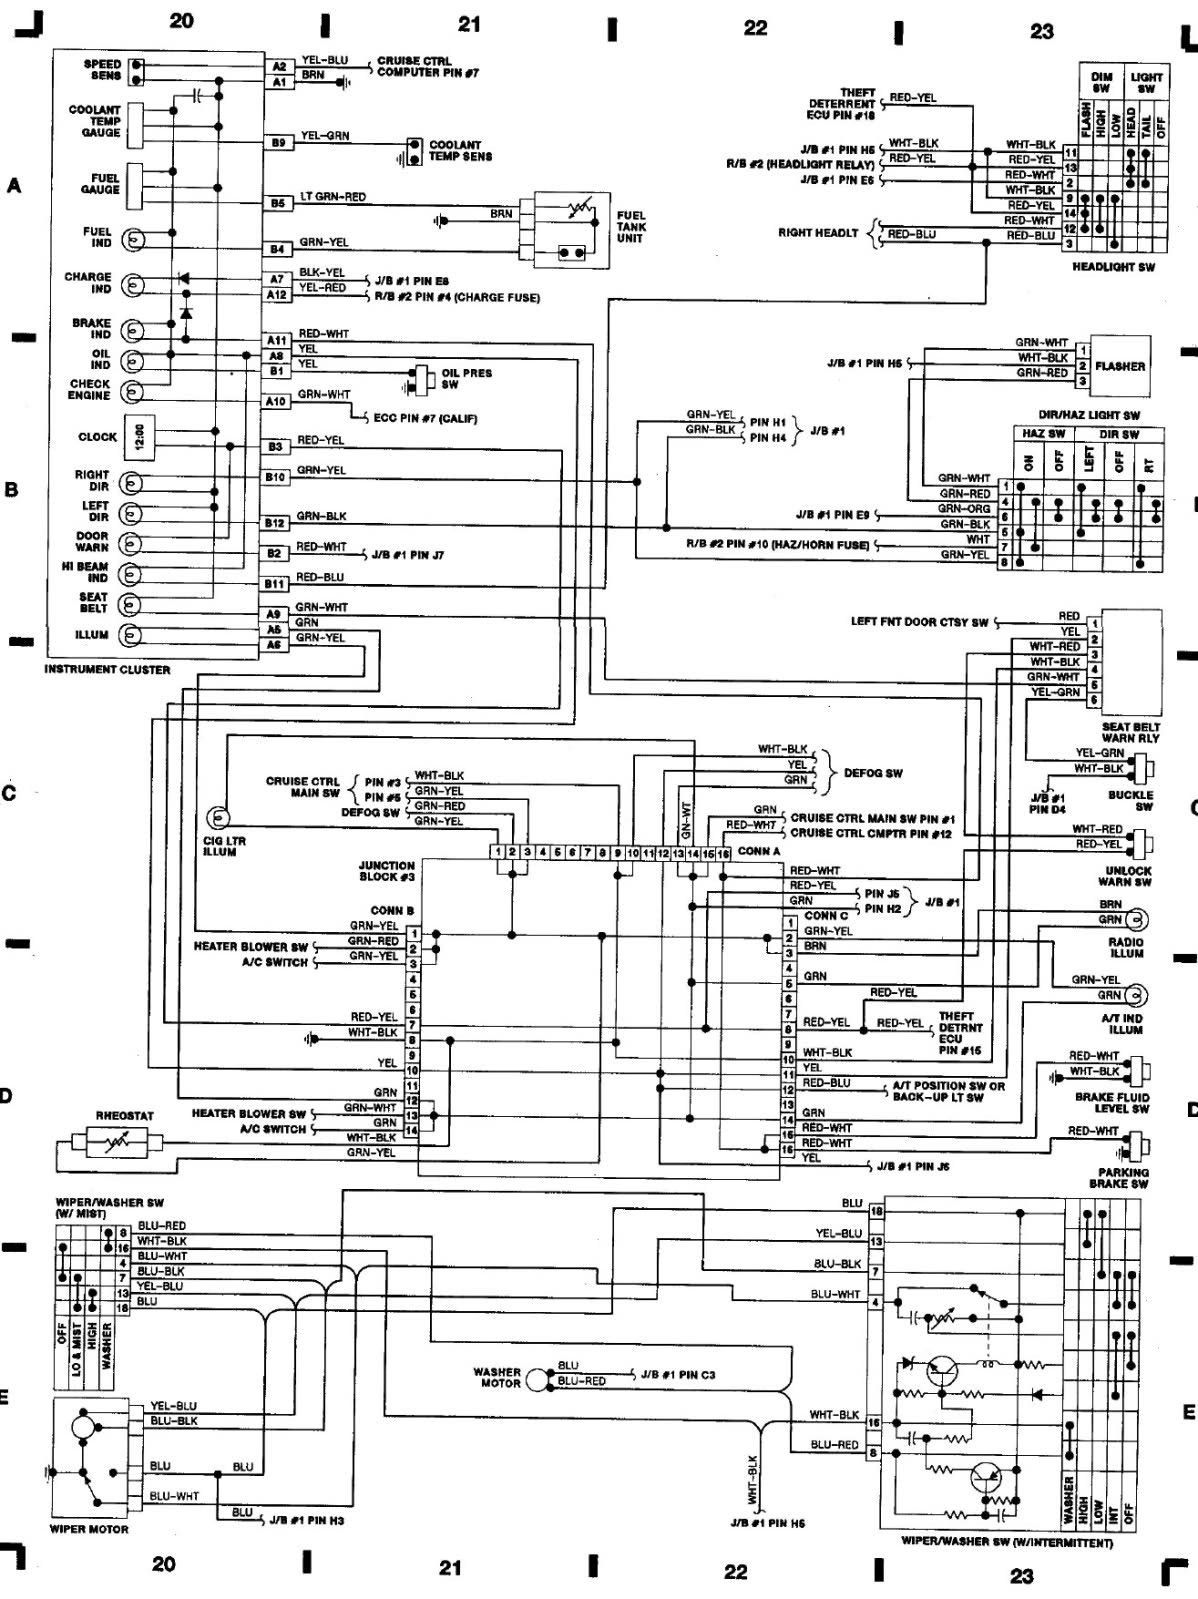 2005 Nissan Sentra Fuse Box Diagram Wiring Schematic